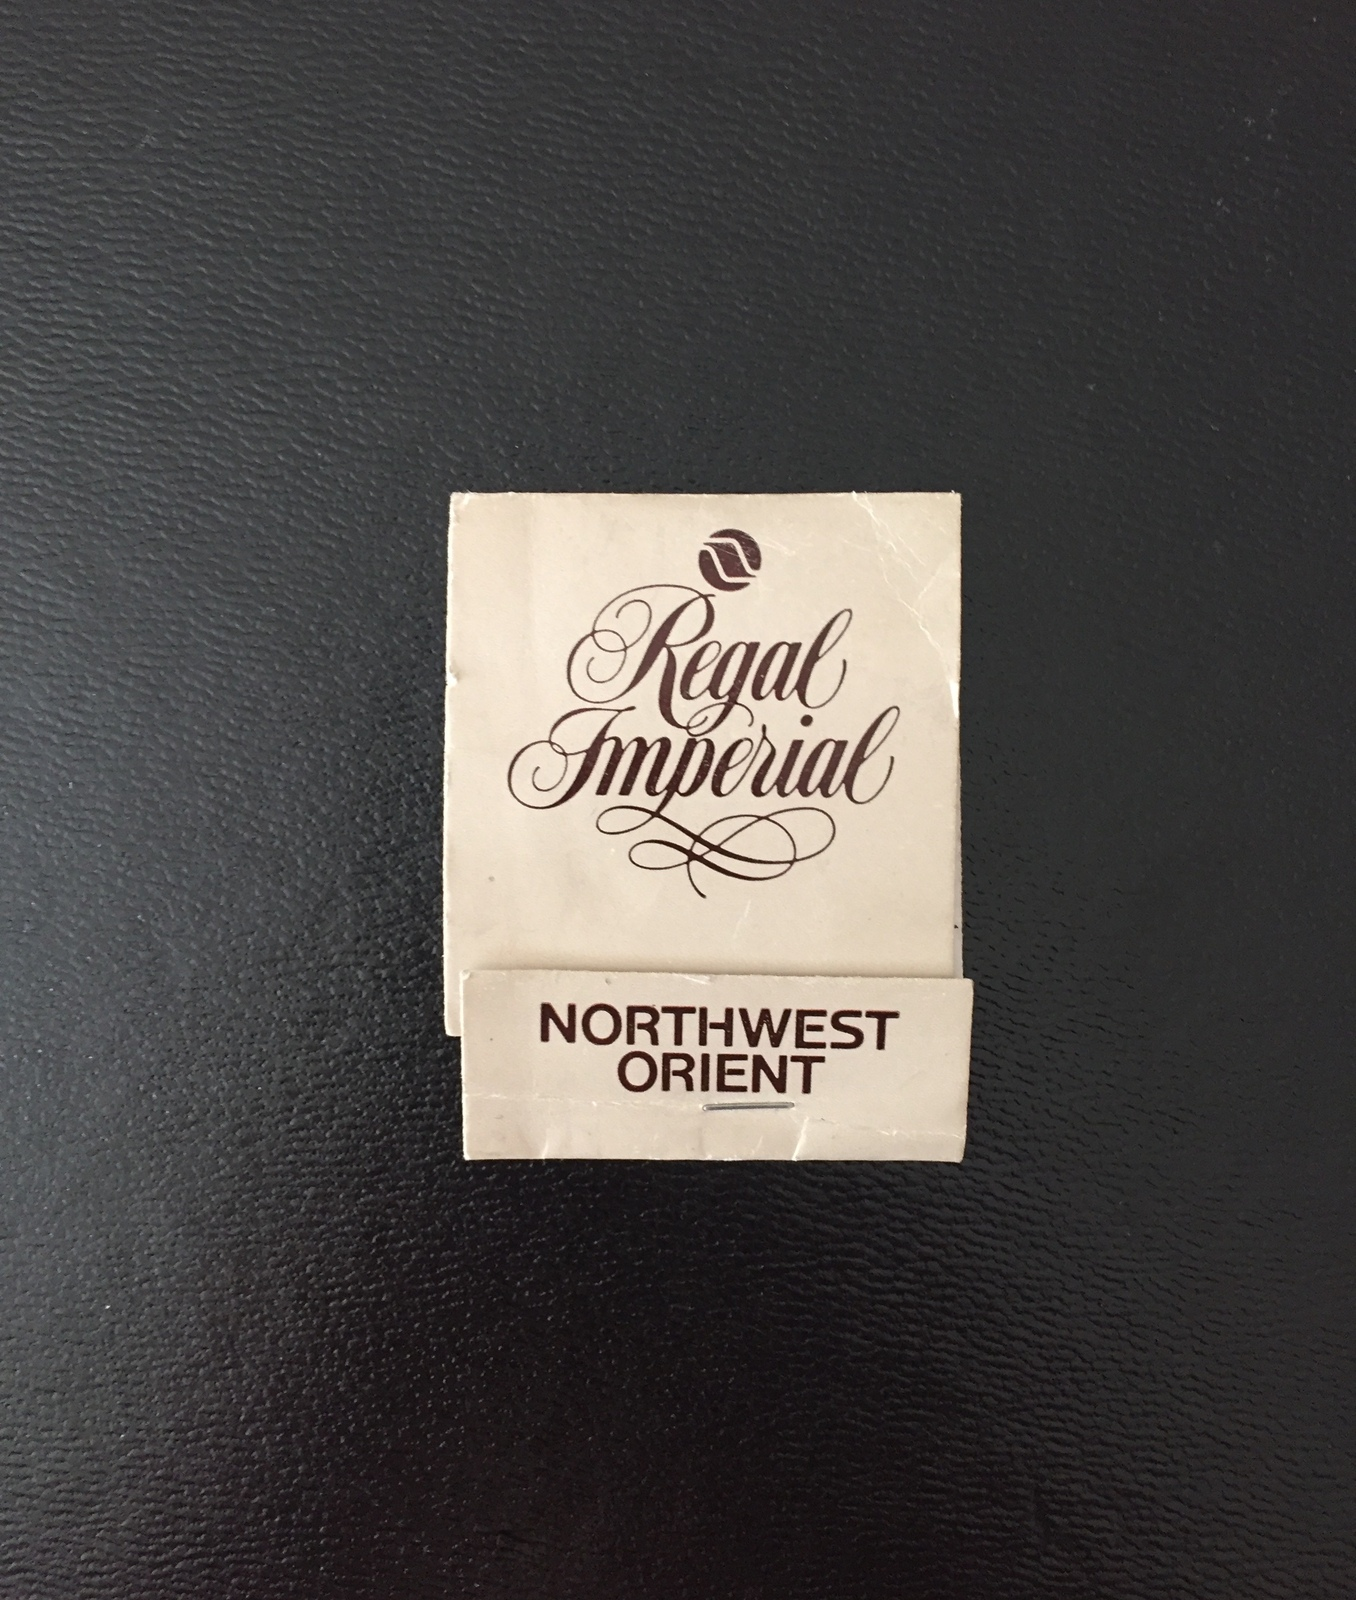 Vintage 70s Northwest Orient Regal imperial sewing kit - new and unused